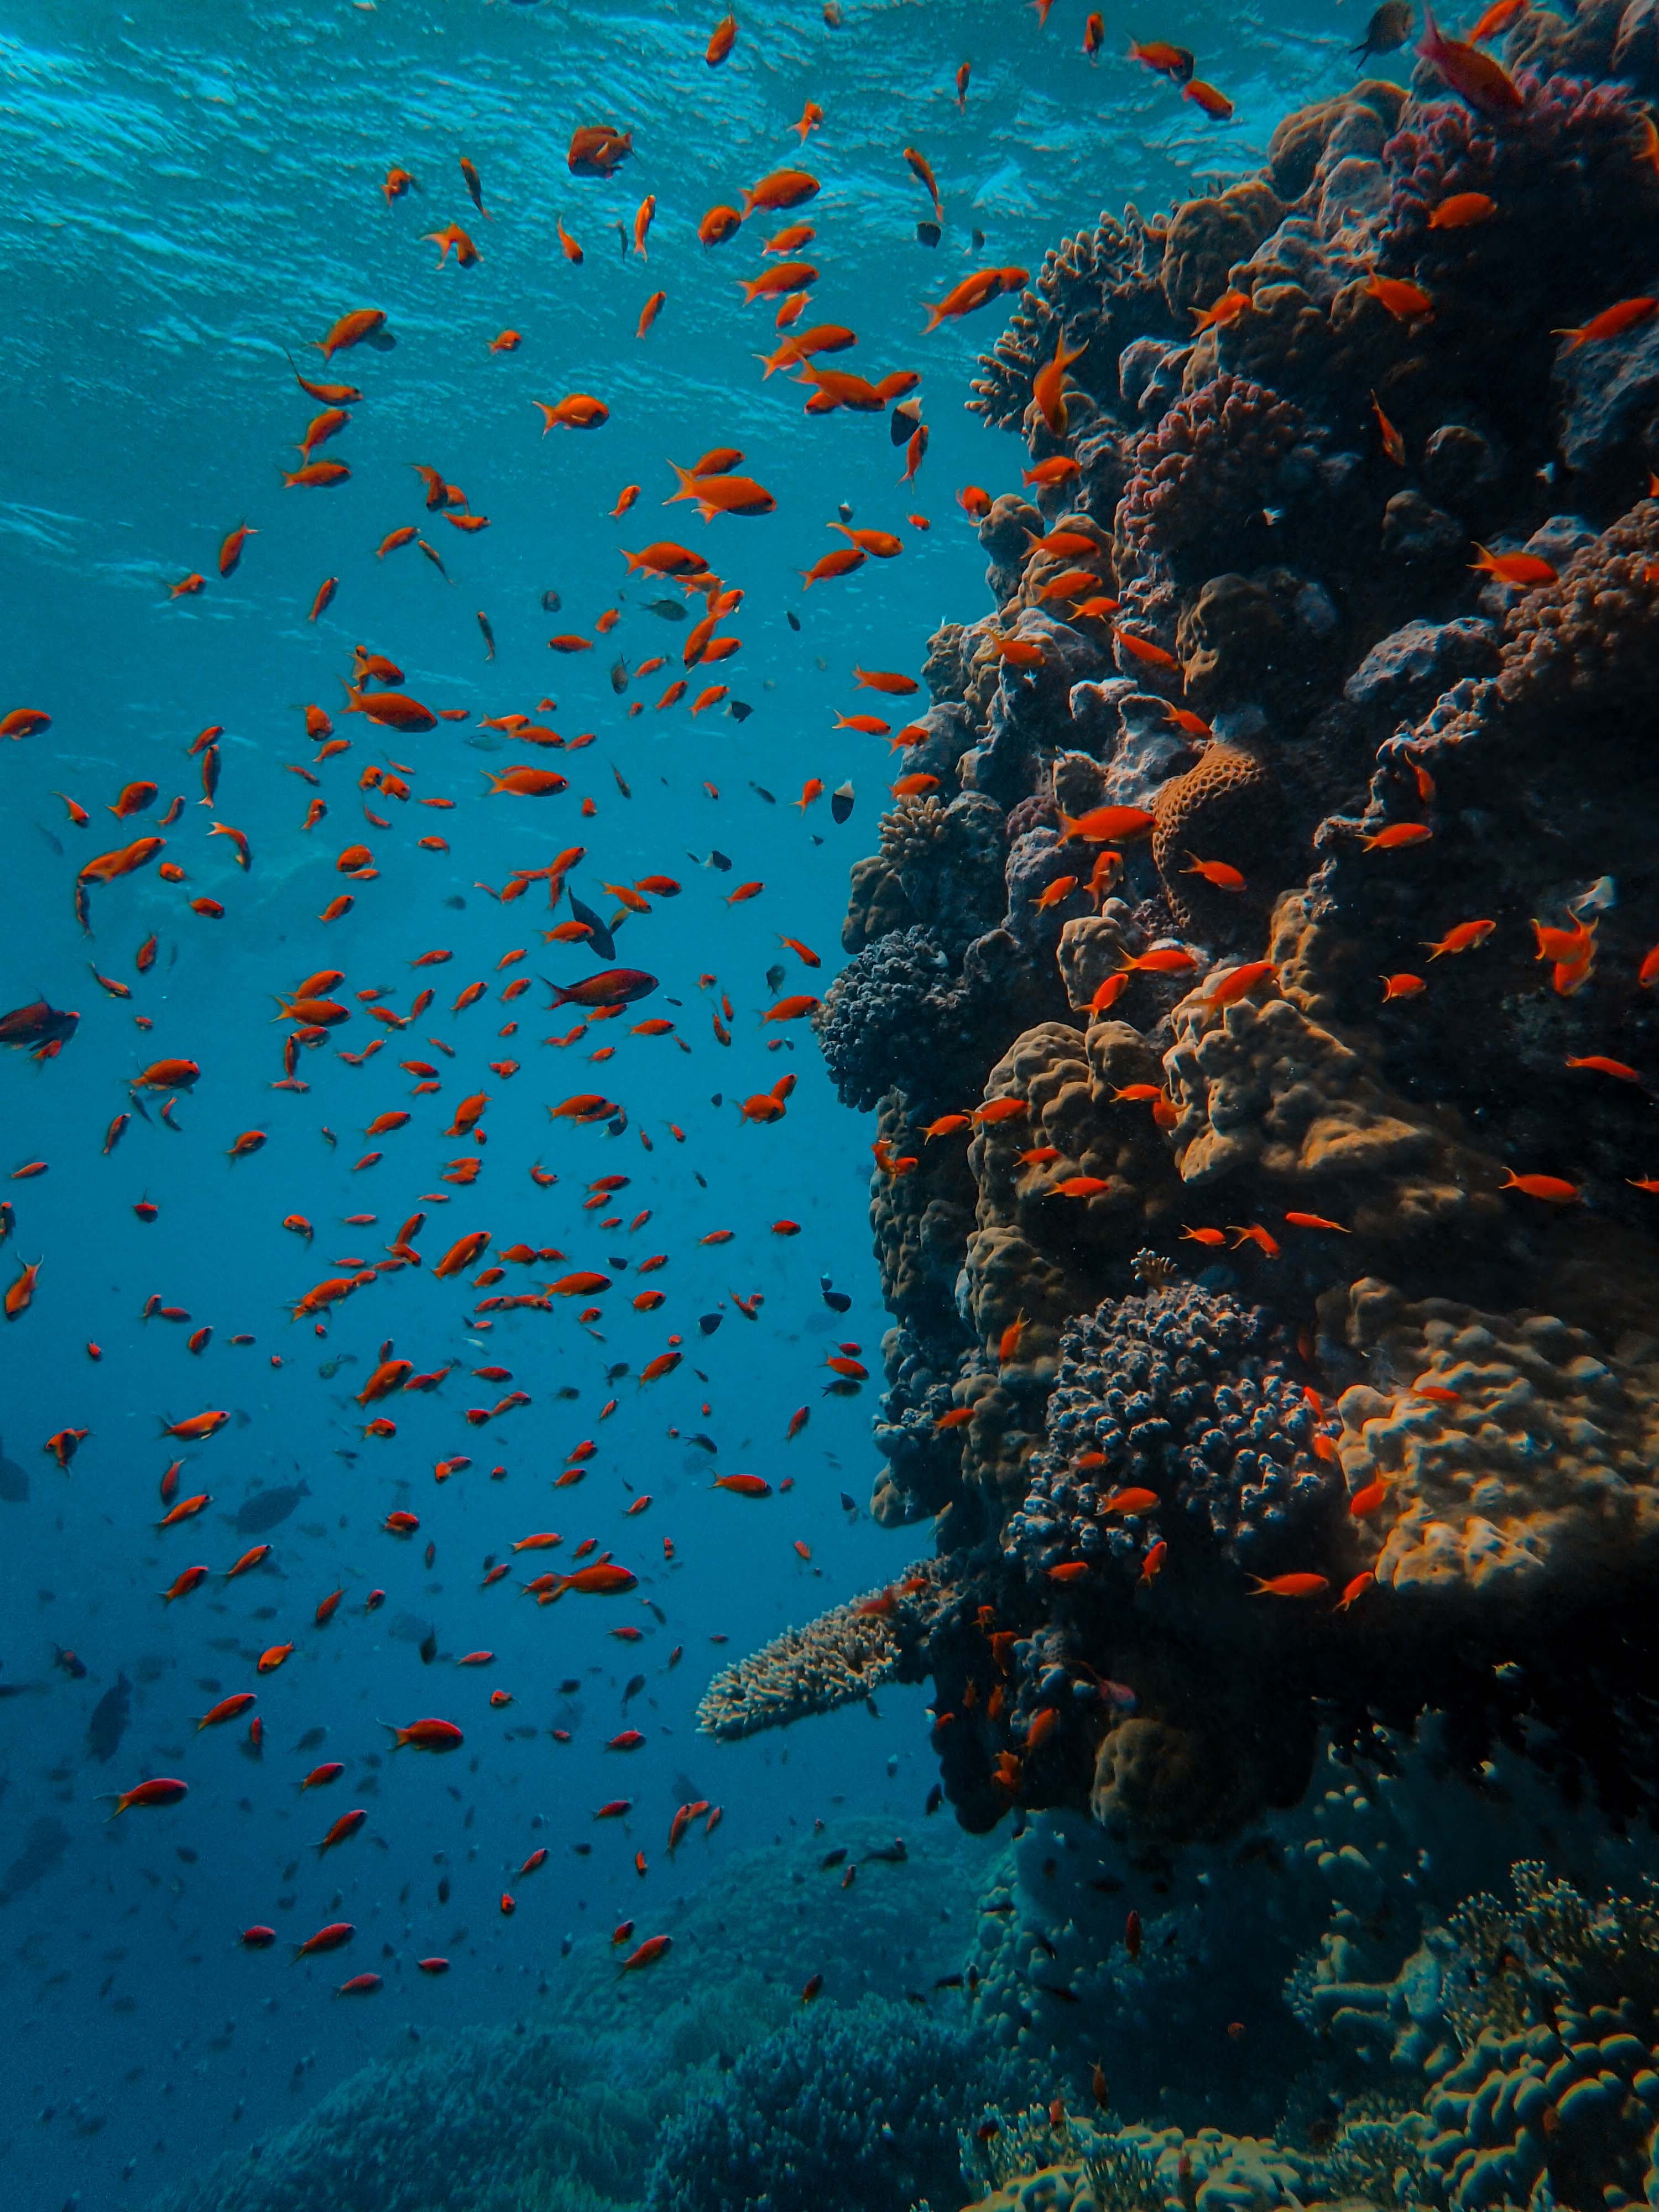 100123 download wallpaper Animals, Fishes, Ocean, Underwater World, Coral Reef screensavers and pictures for free